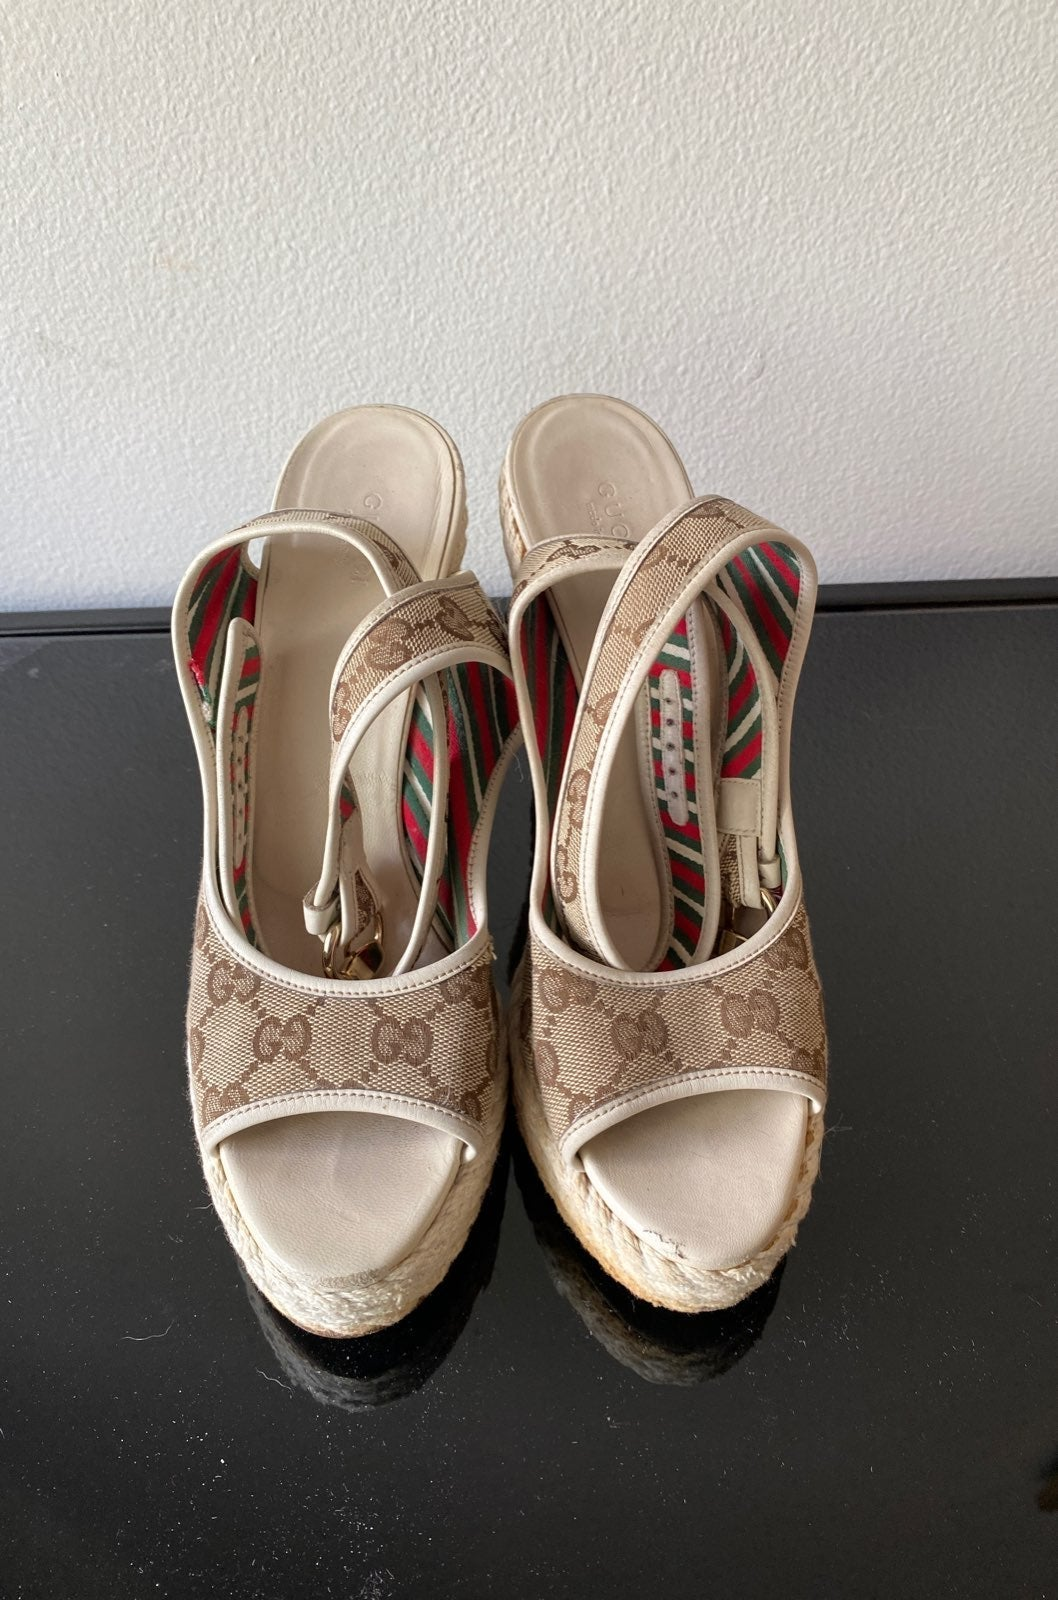 Vintage Gucci rope wedges